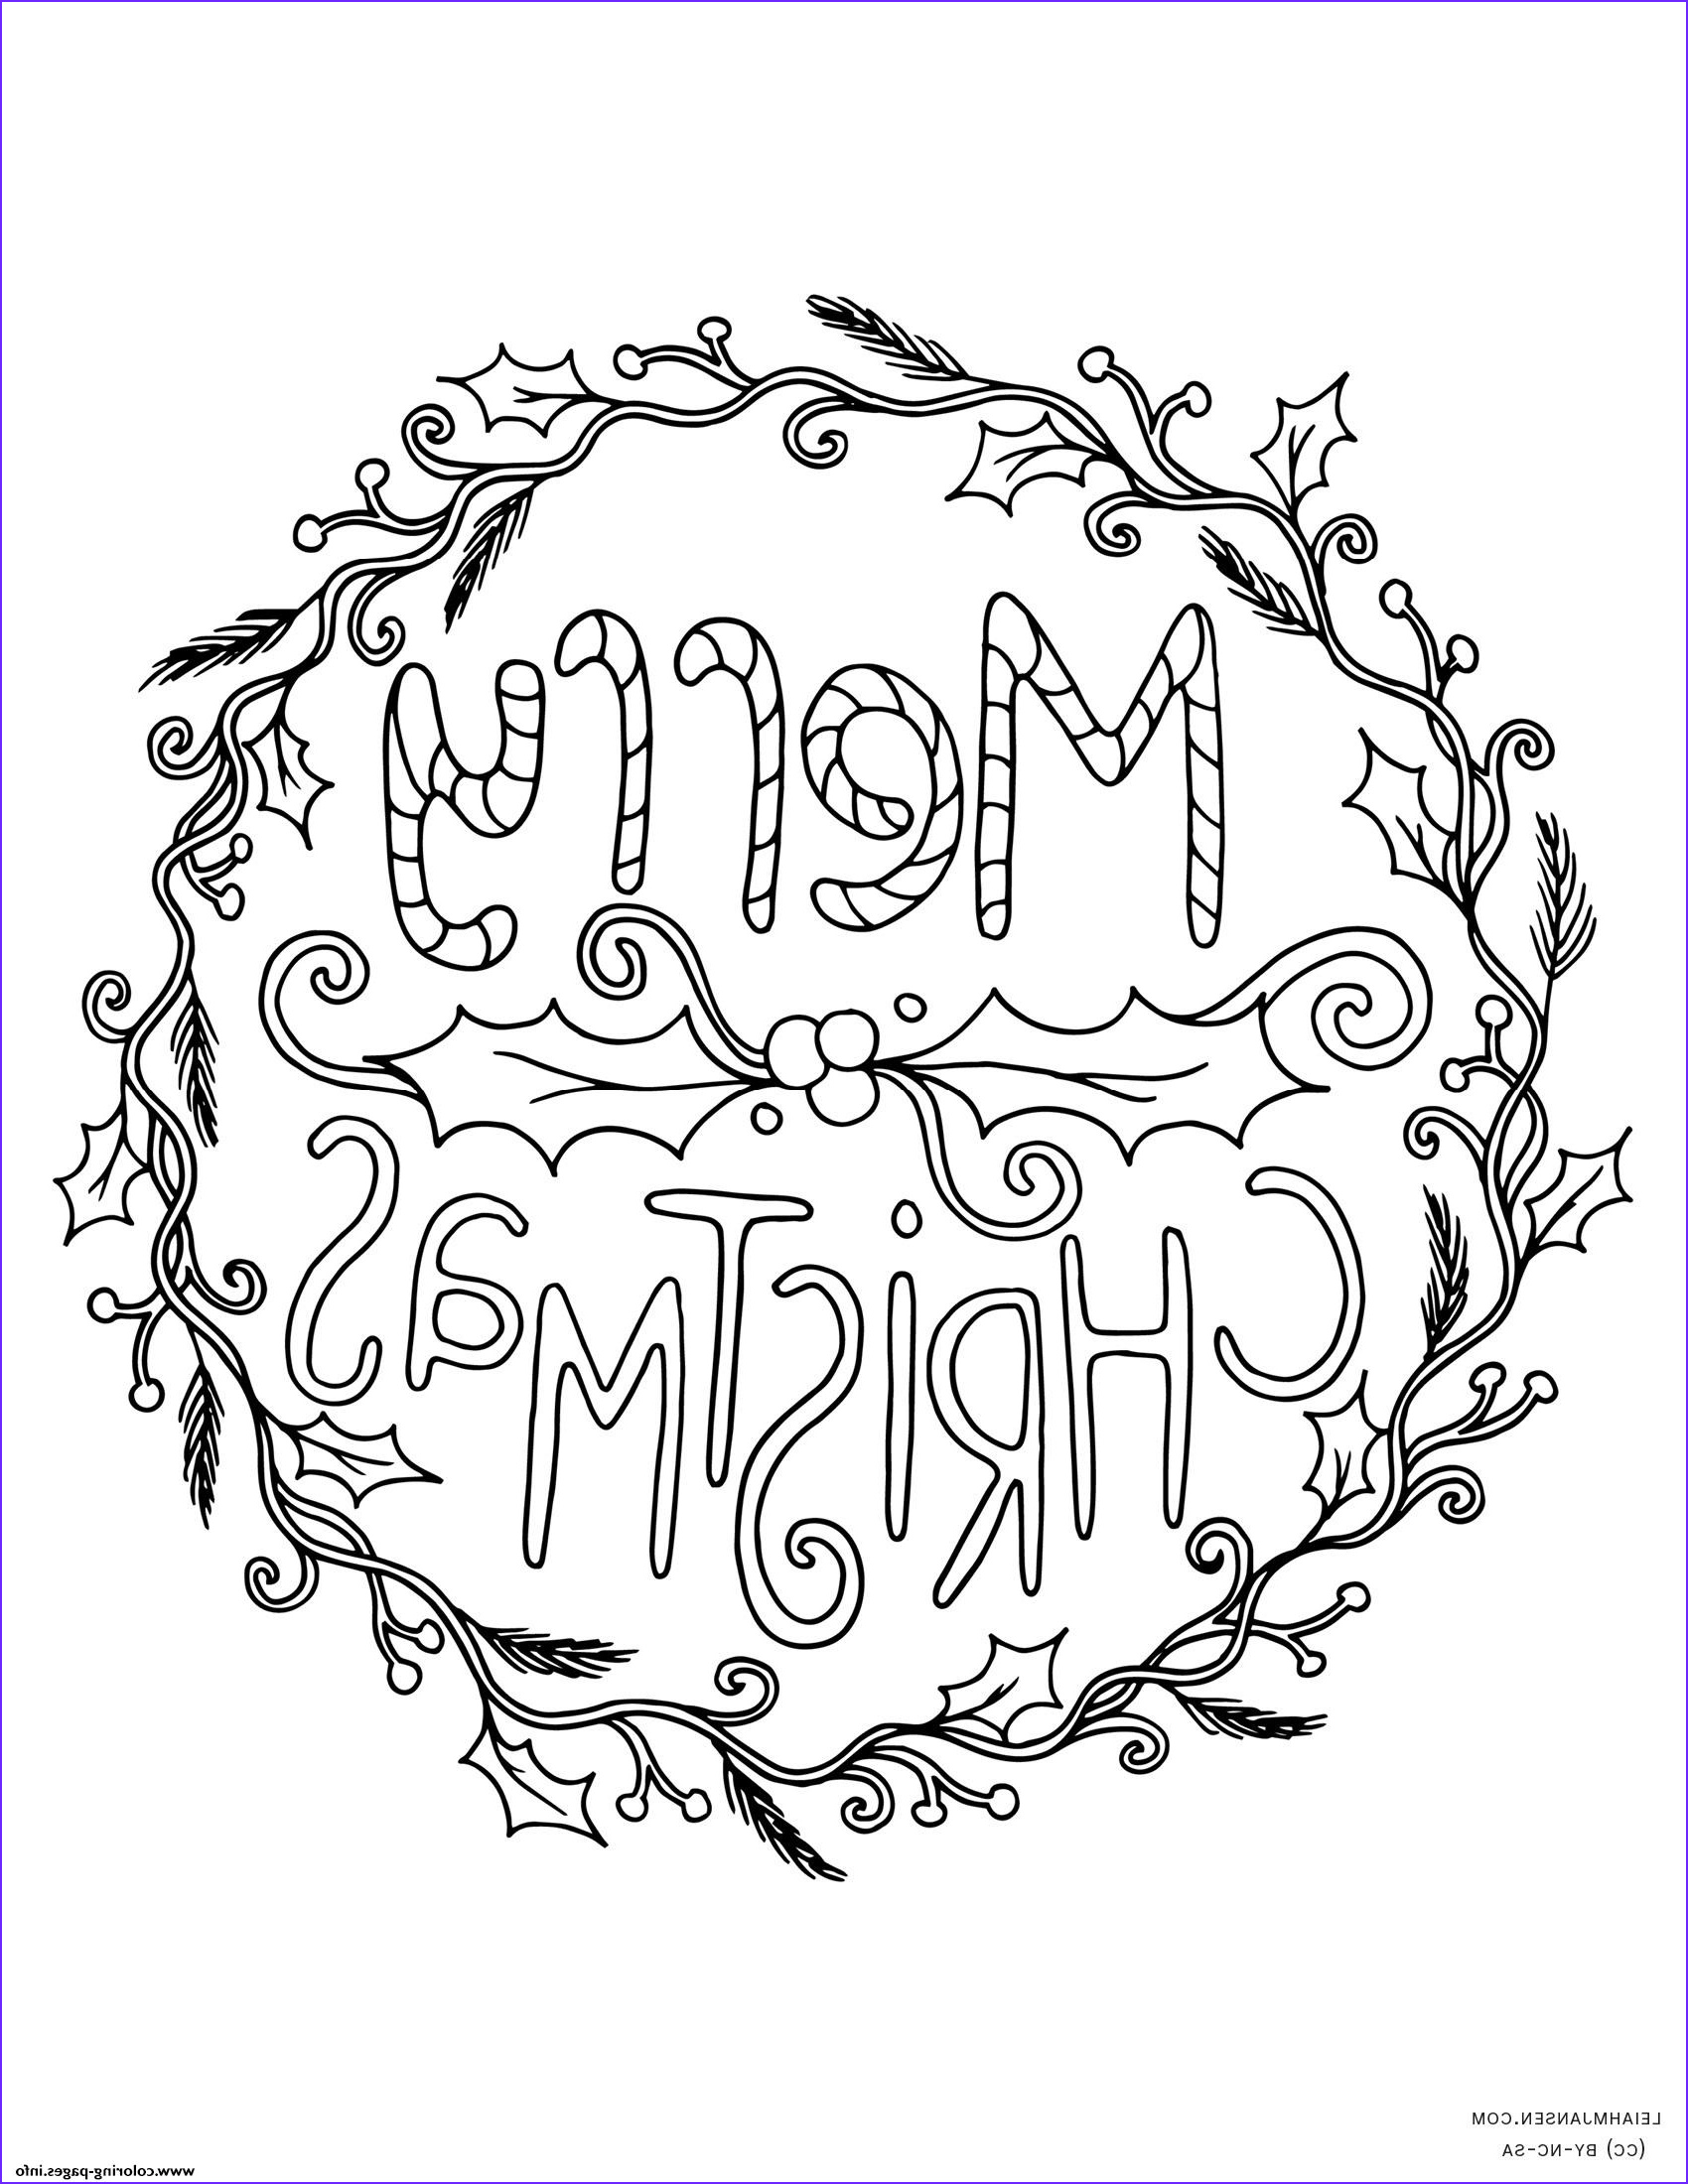 Merry Christmas Coloring Page that Say (merry Christmas) Beautiful Images Merry Christmas Wreath Adult Coloring Pages Printable